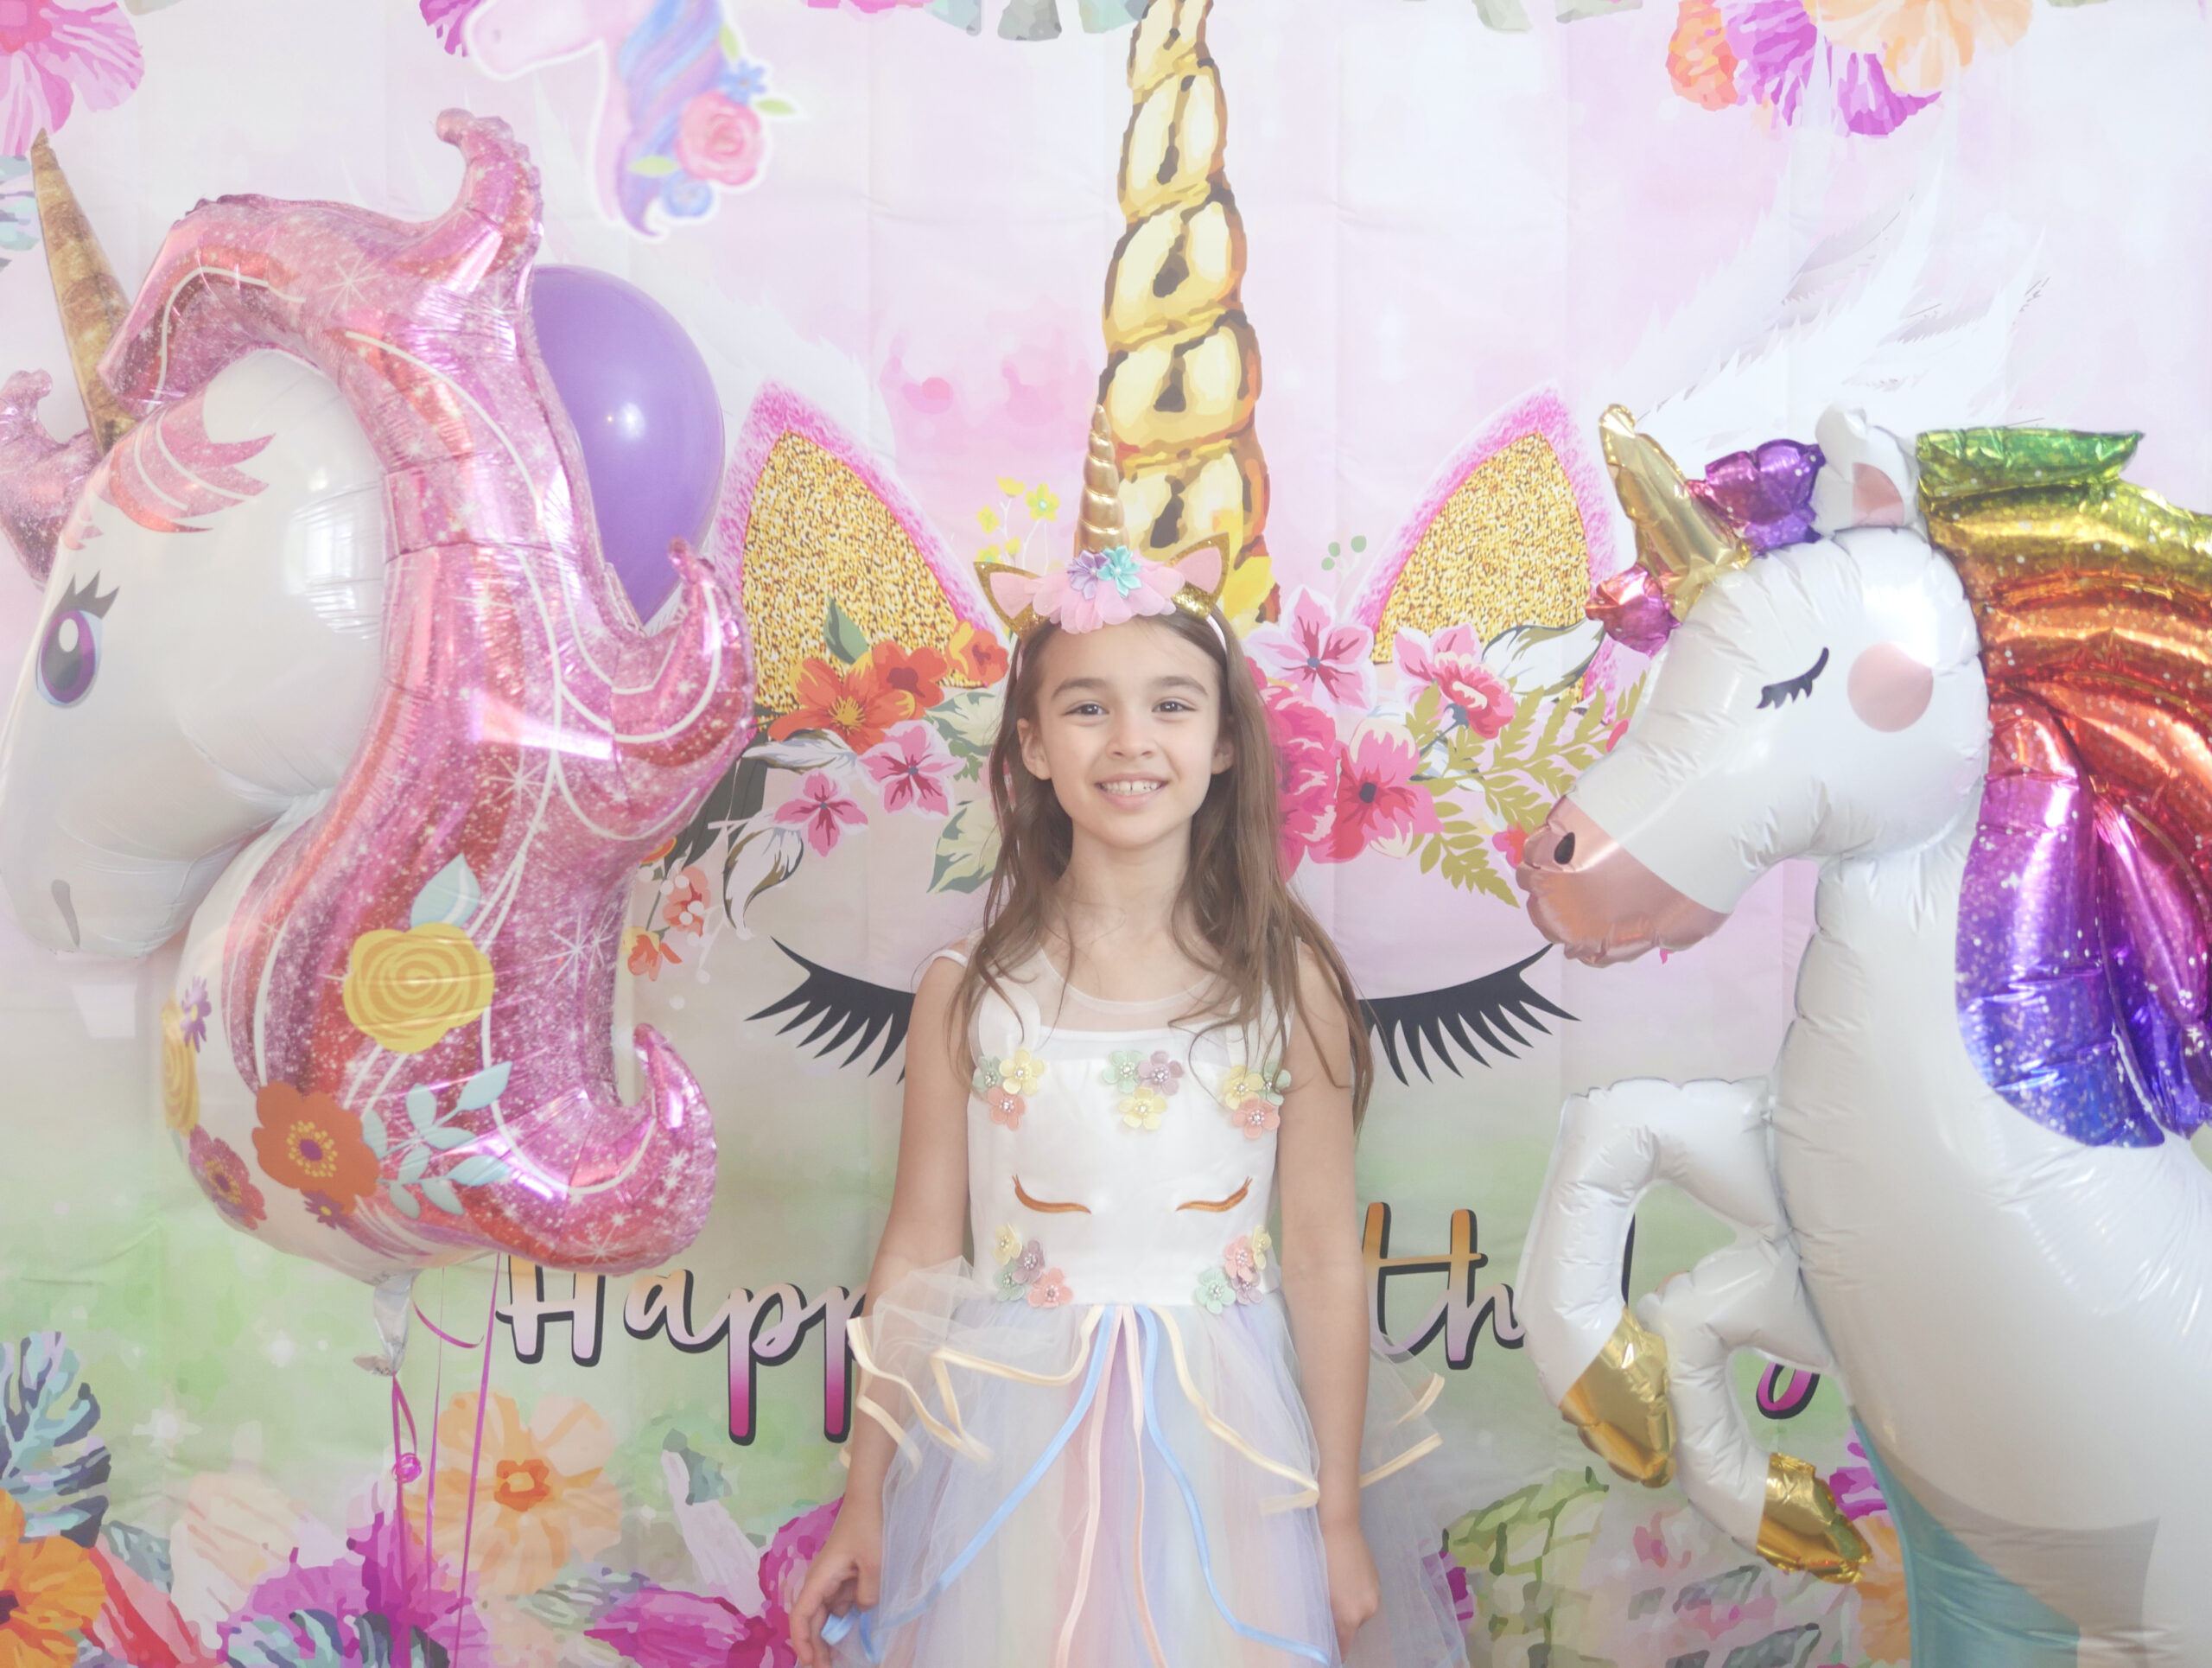 Making Our Home into a Unicorn Cave for a Memorable Virtual Birthday Party